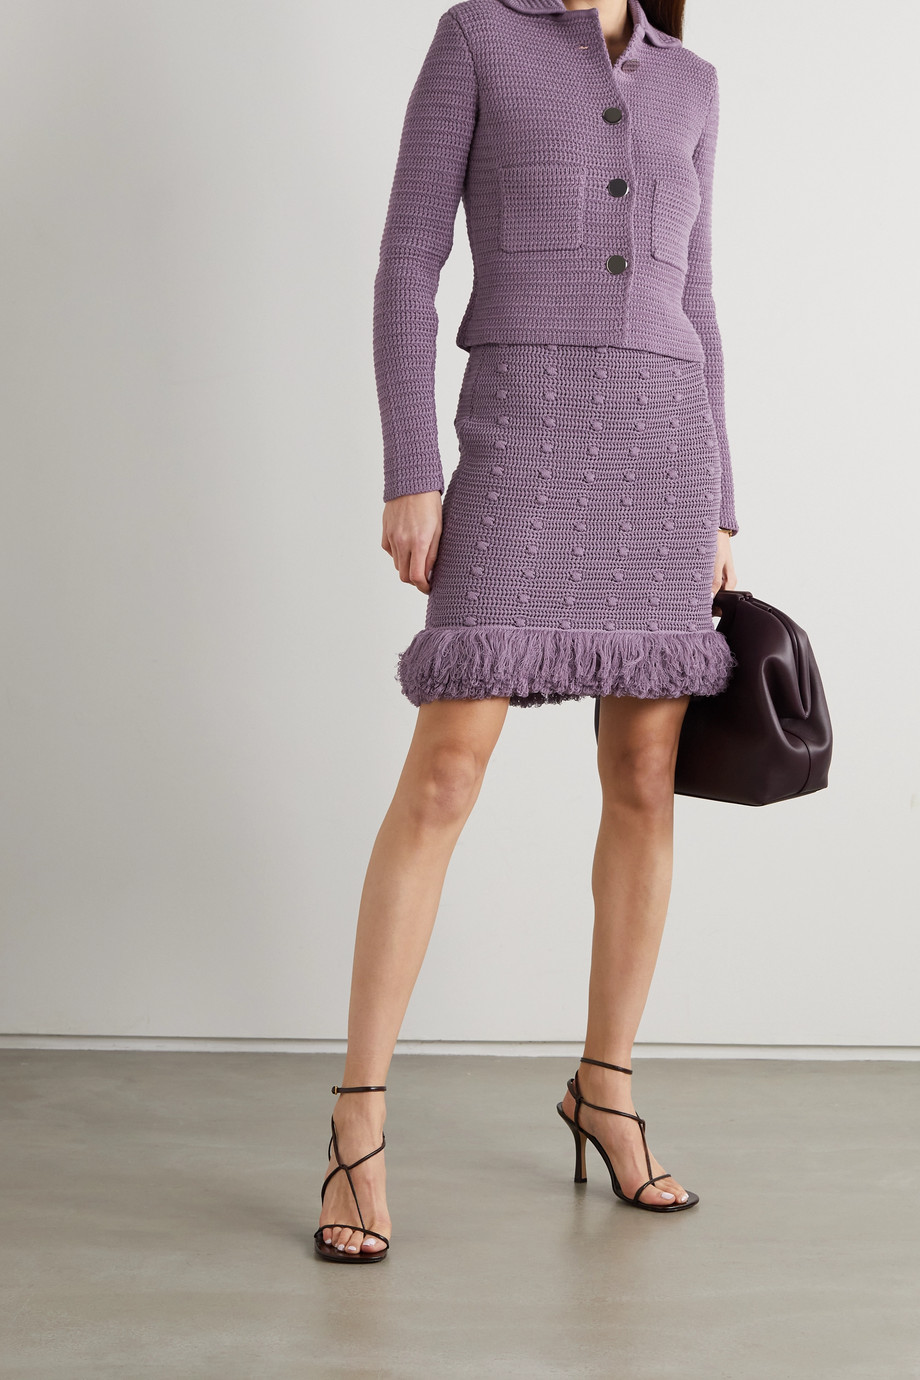 BOTTEGA VENETA Fringed polka-dot crochet-knit cotton mini skirt